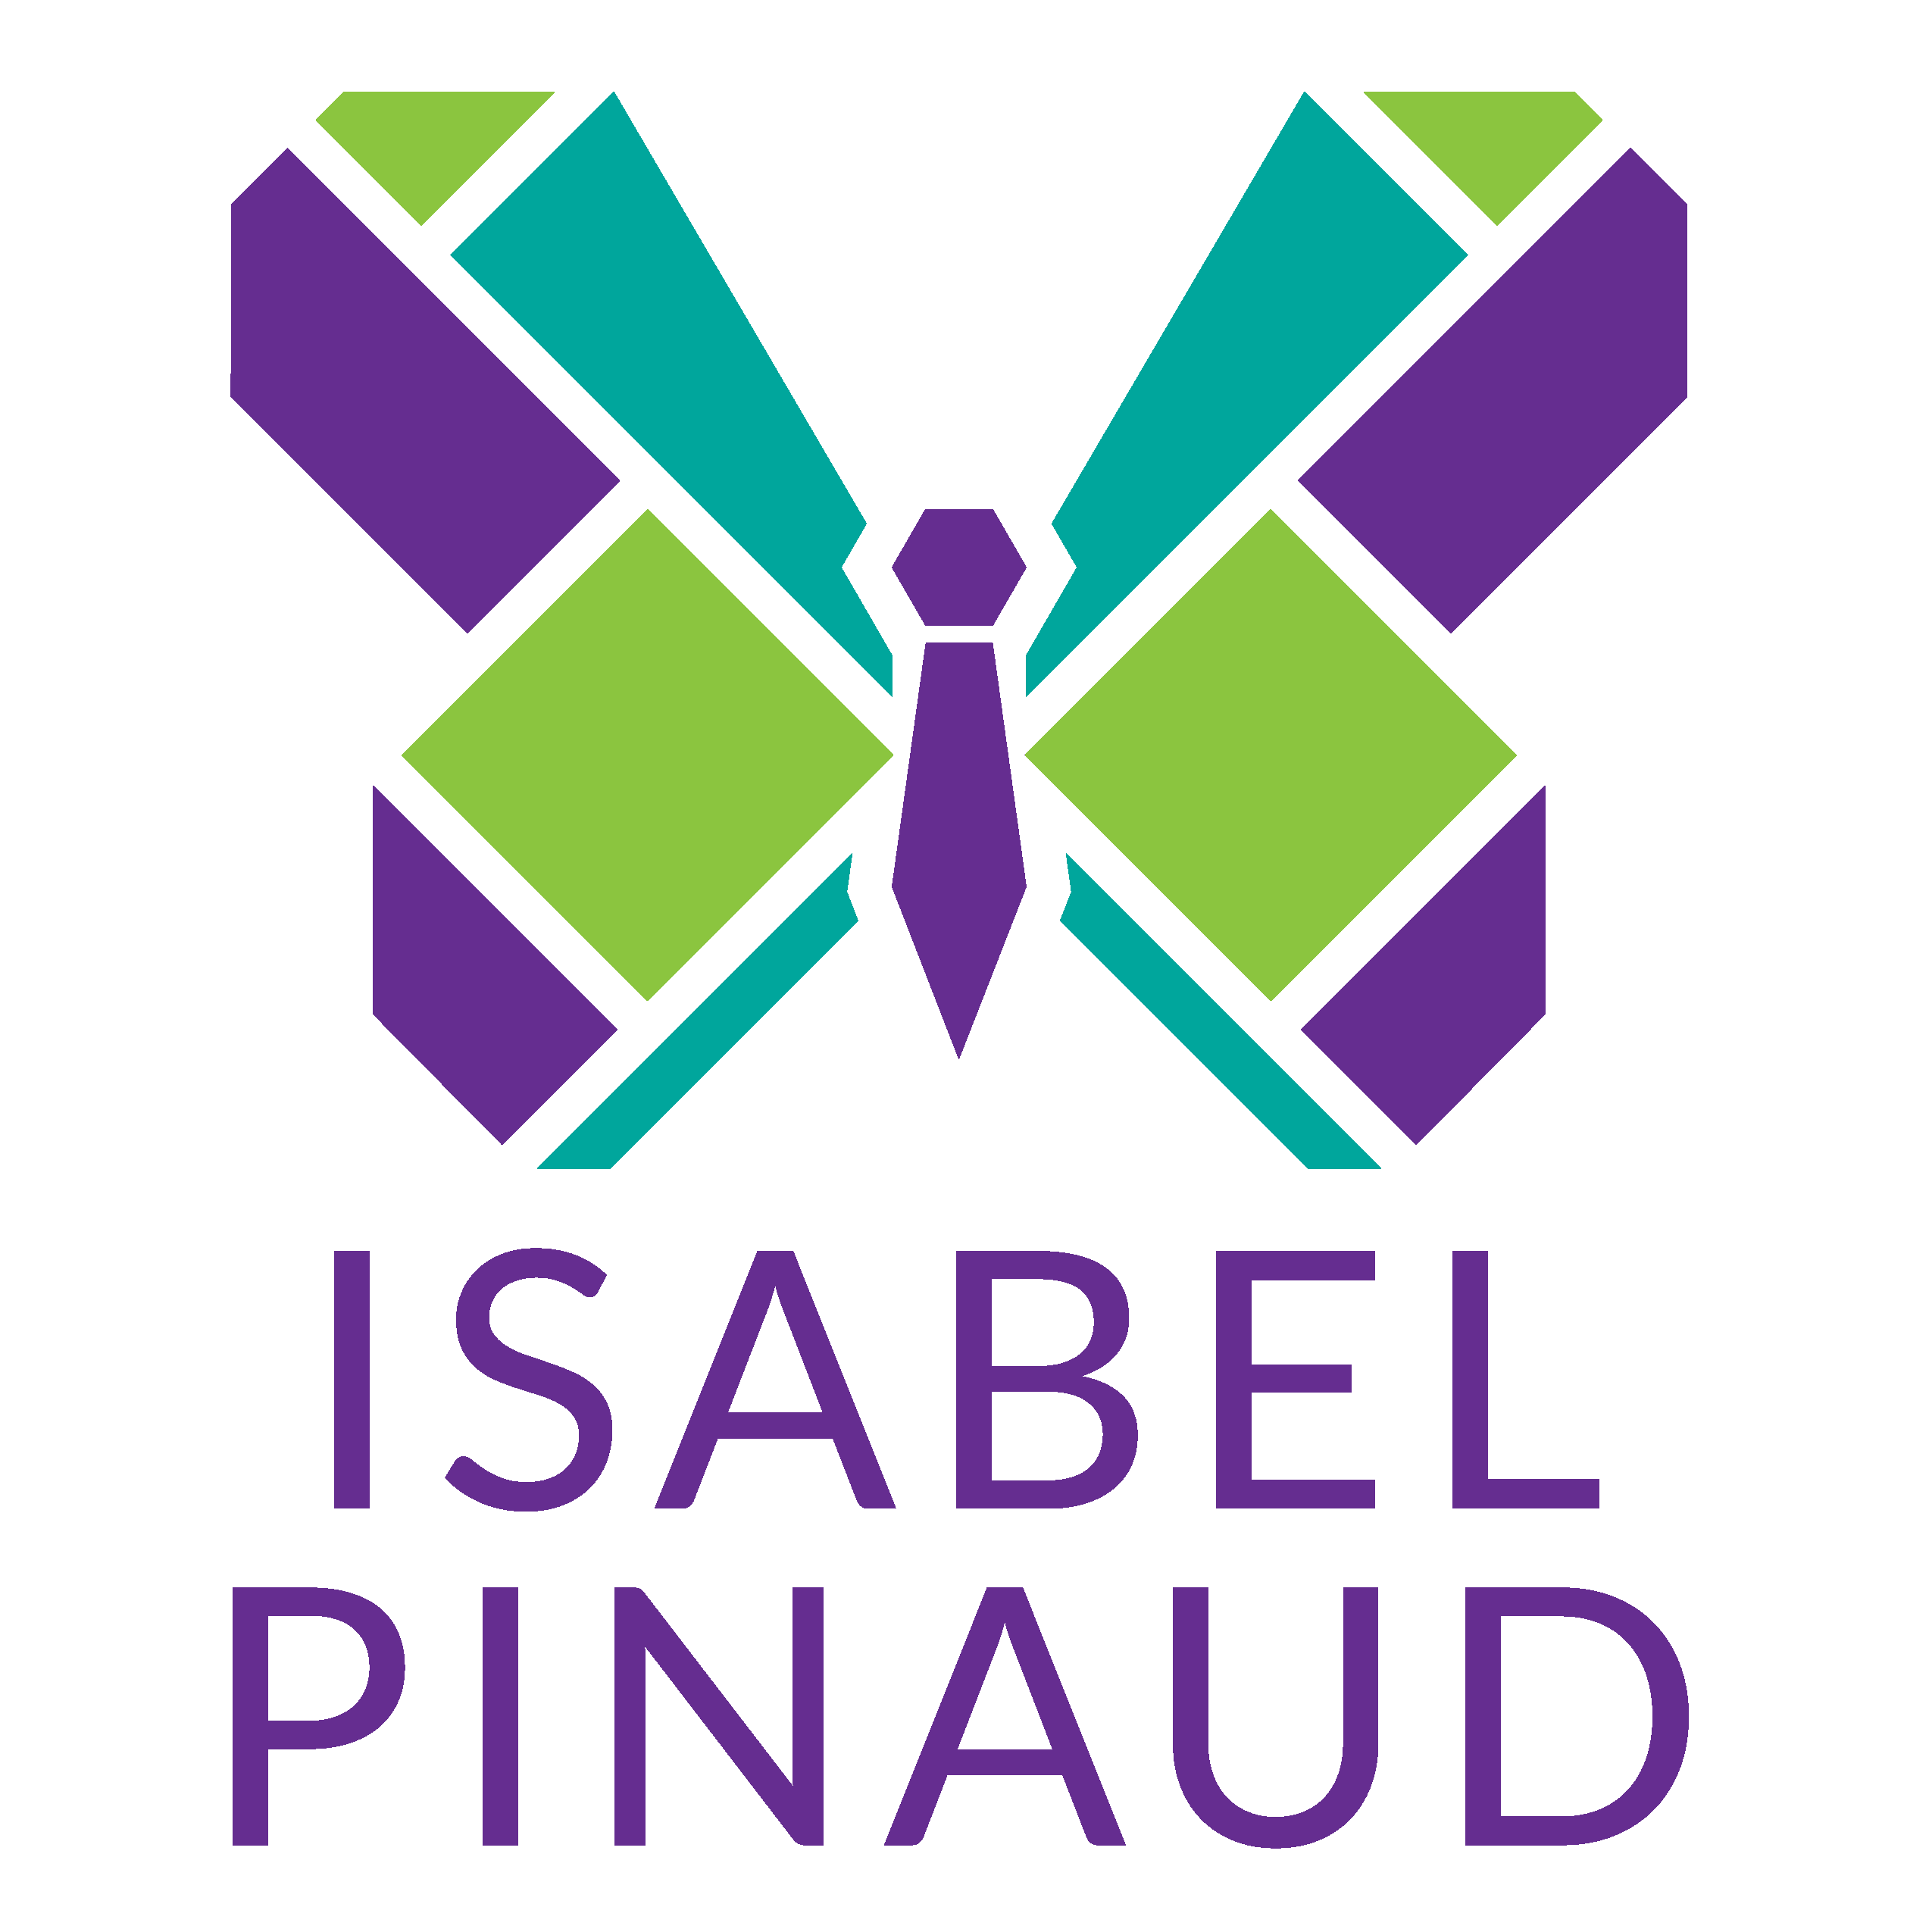 Isabel Pinaud Design Studio